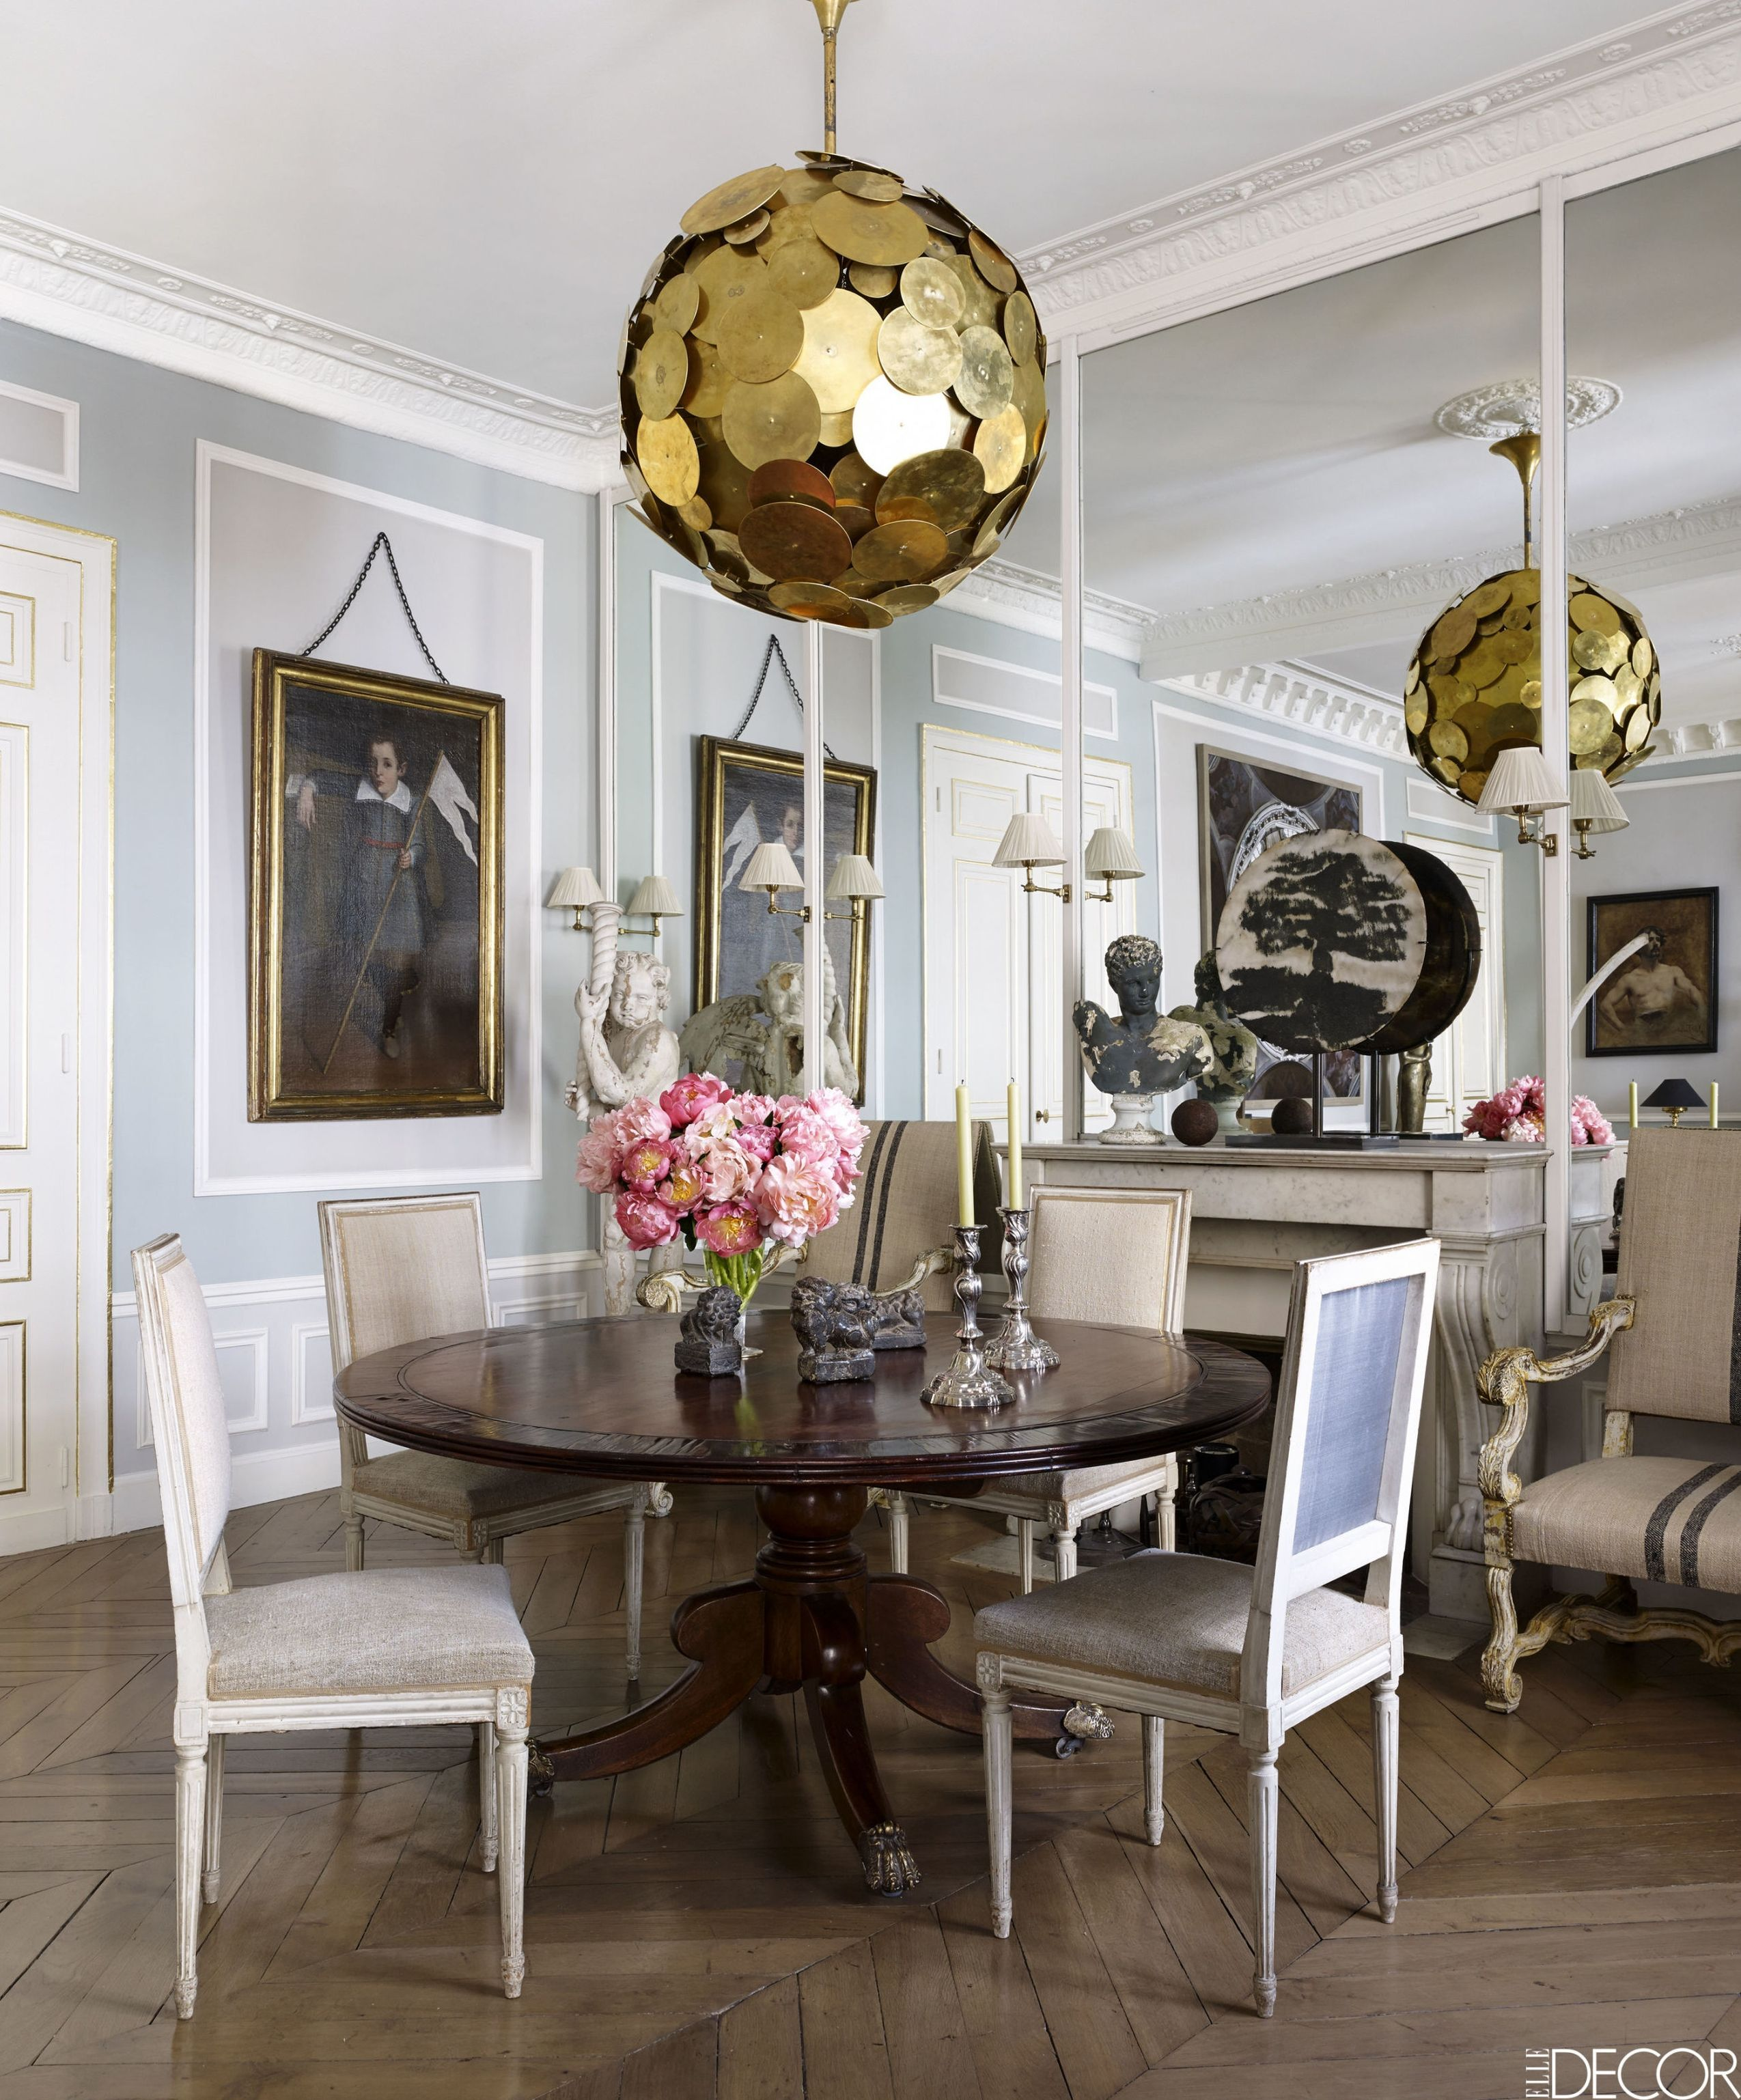 Chic Dining Room Chandeliers: The Parisian Dining Room